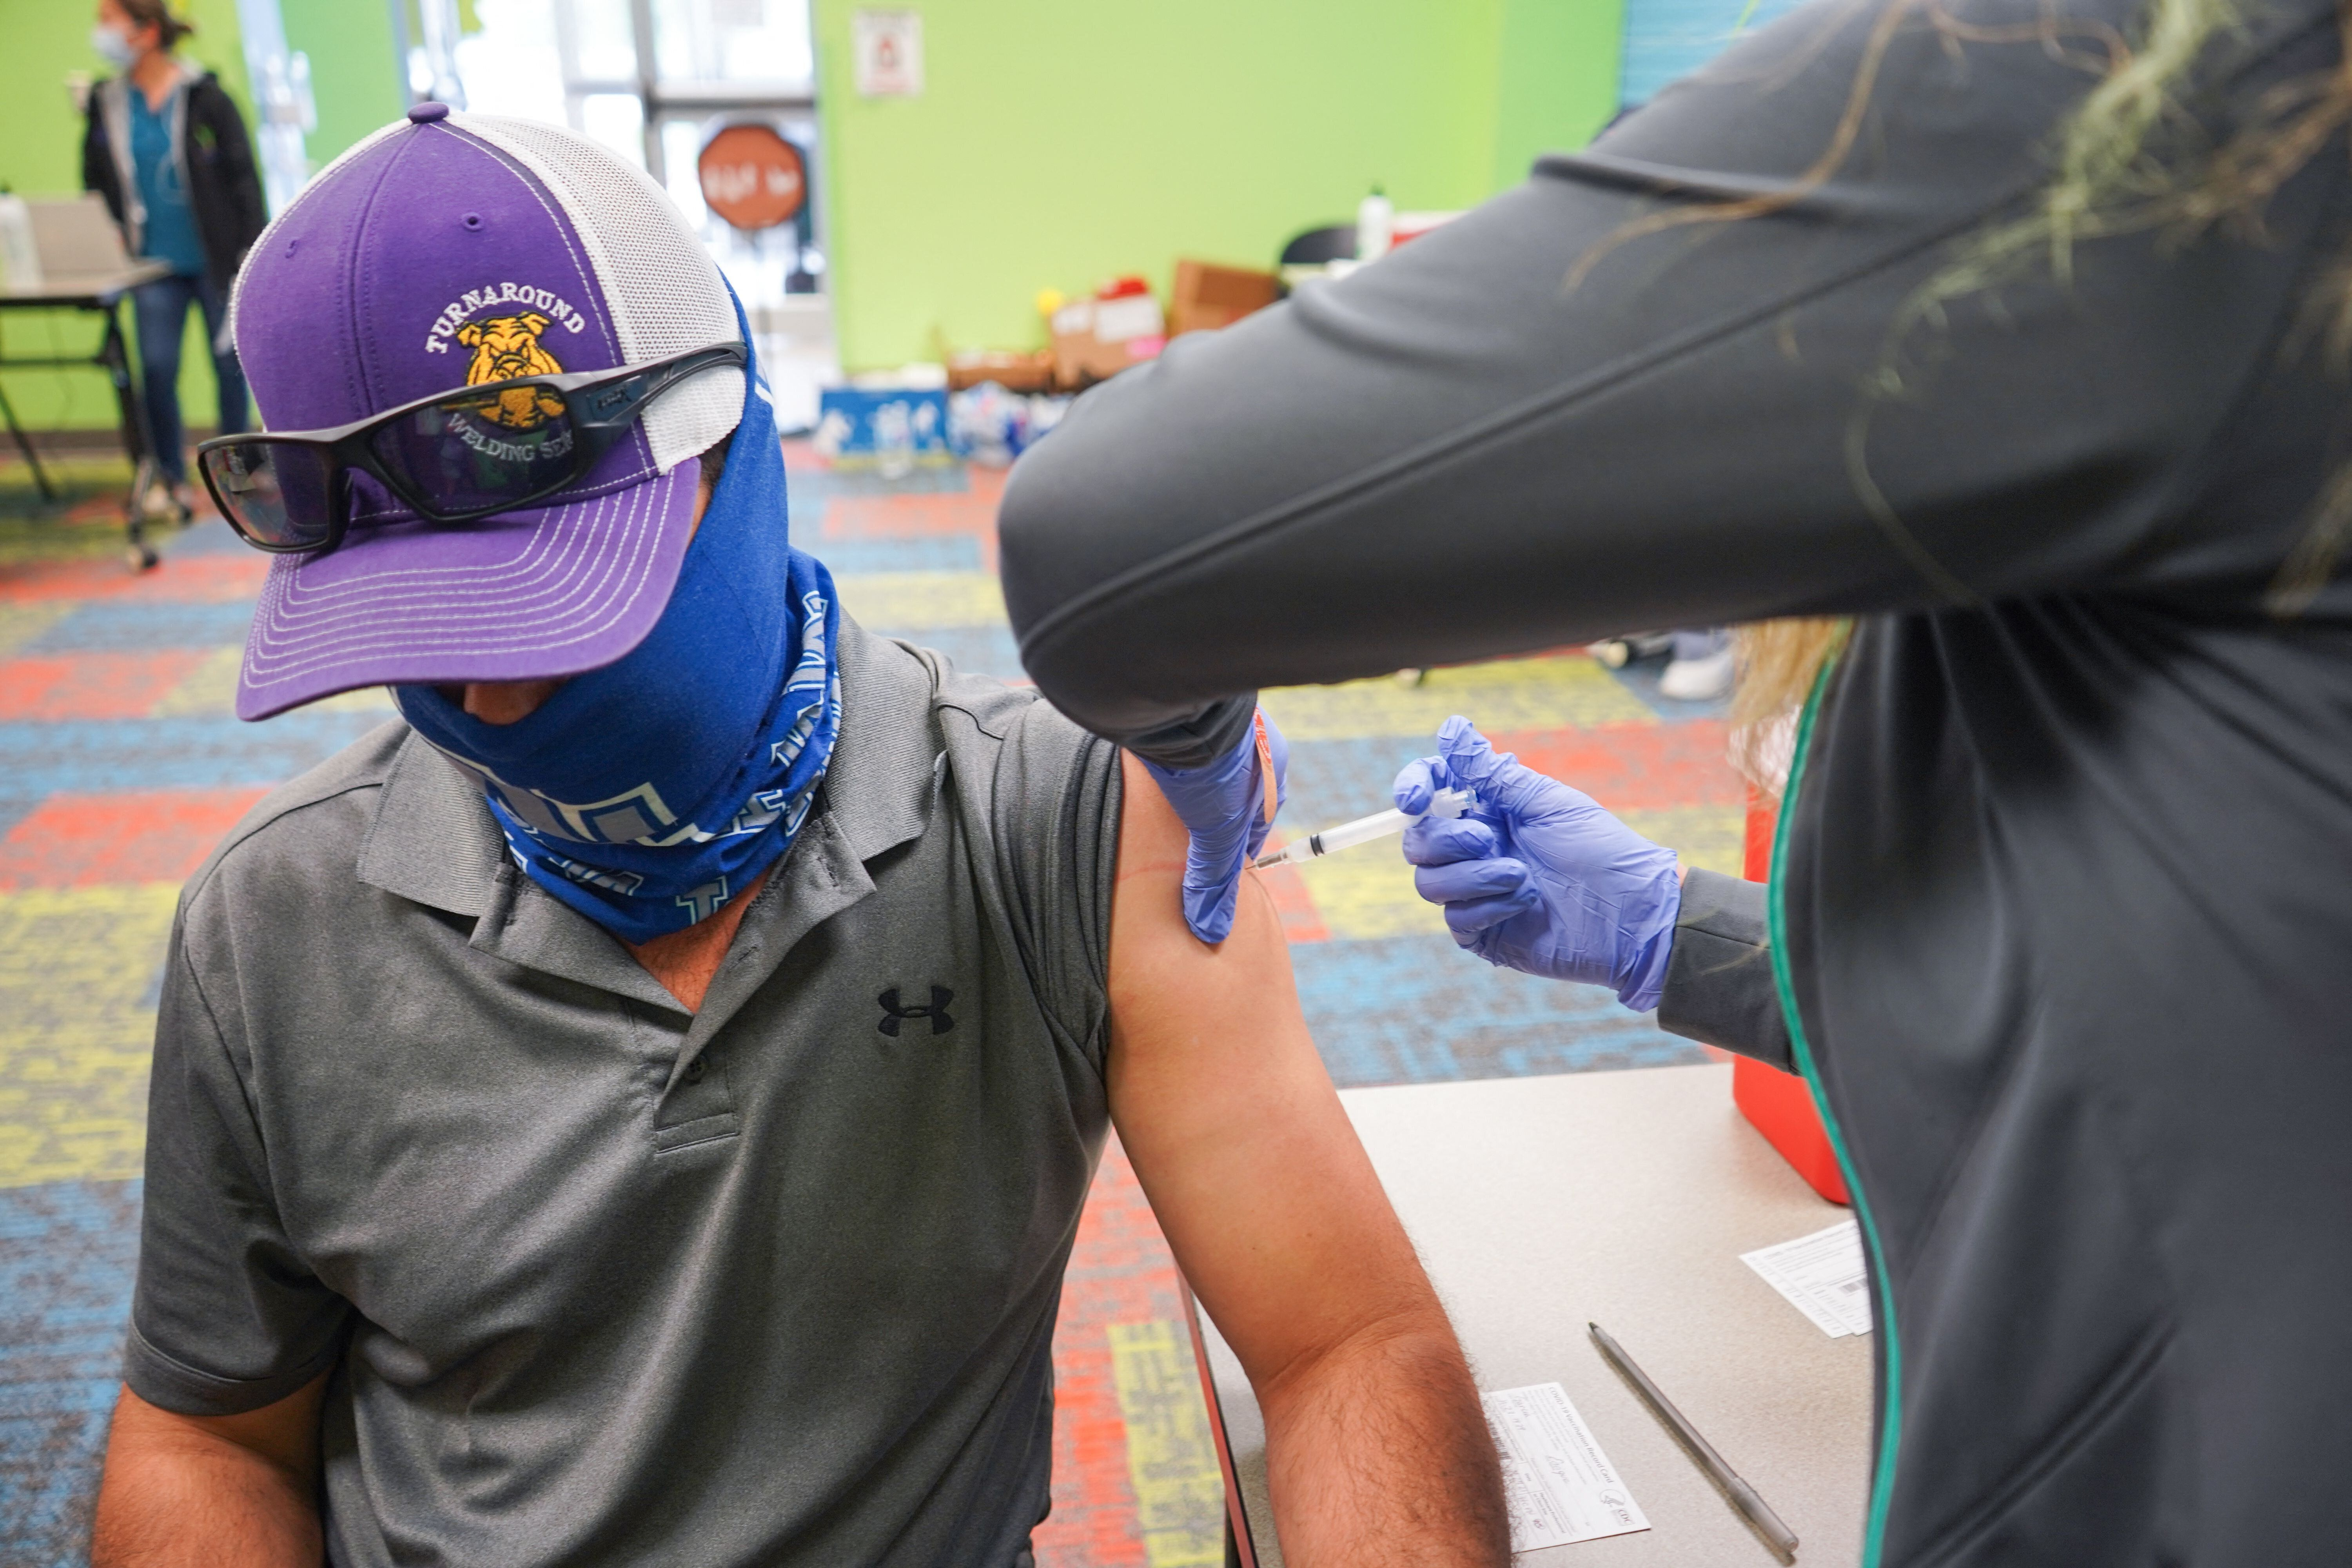 A health care worker vaccinates a man on April 30, 2021, at the Pasadena Public Library in Pasadena, Texas. (Photo by CECILE